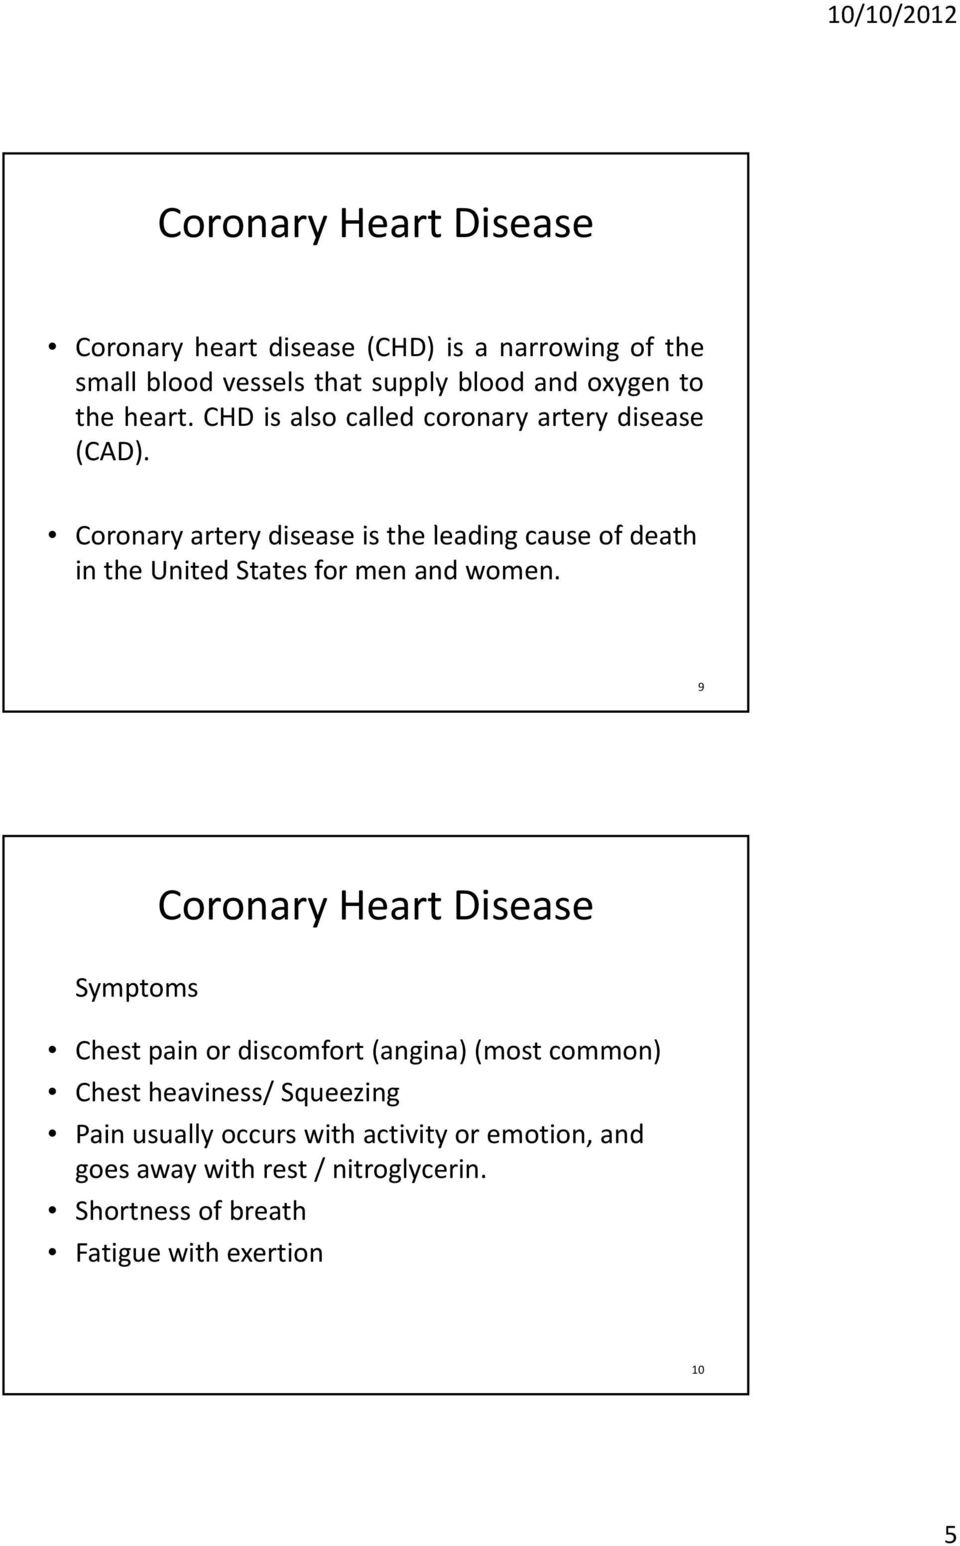 Coronary artery disease is the leading cause of death in the United States for men and women.